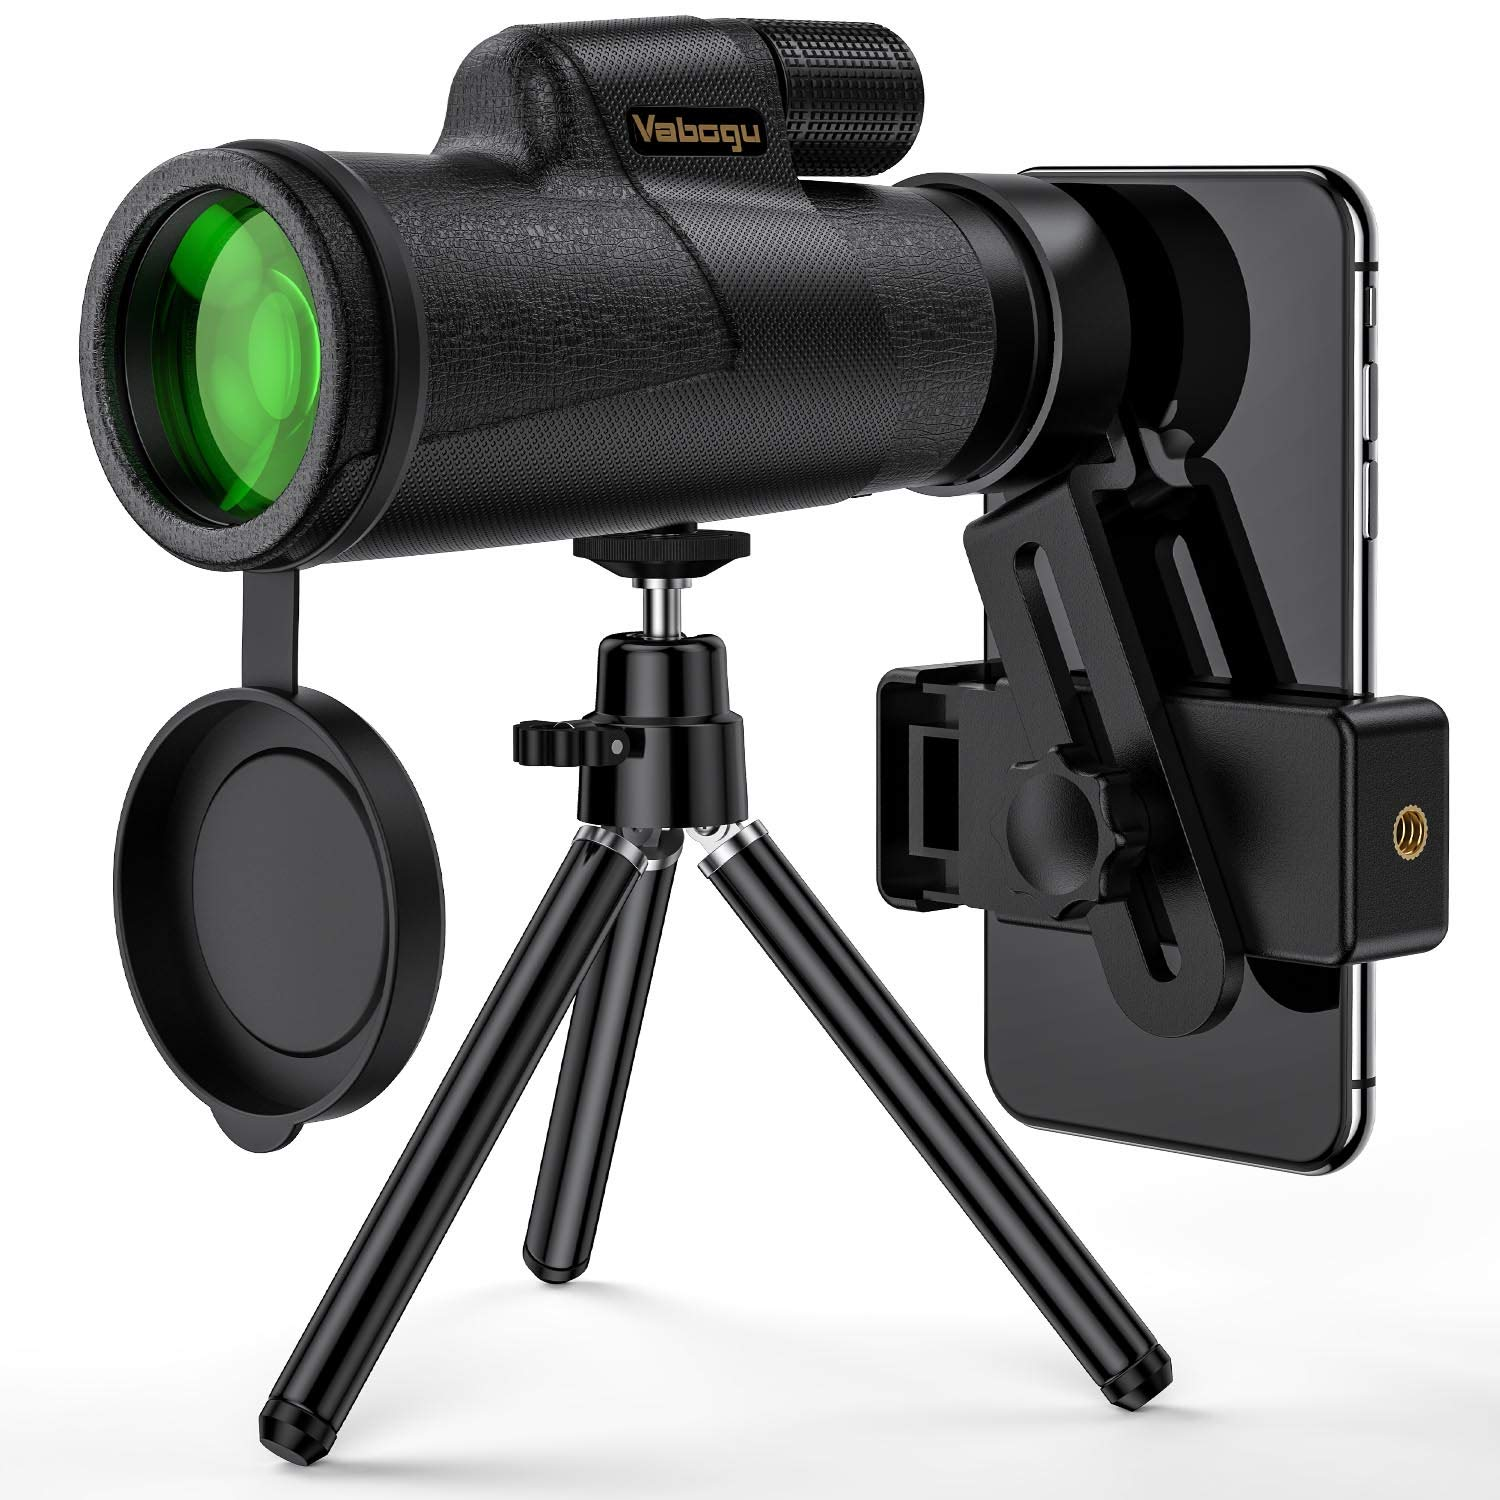 Monocular Telescope, 12x50 High Power HD Monocular for Bird Watching Adults with Smartphone Holder & Tripod BAK4 Prism for Wildlife Hunting Camping Travelling Wildlife - 2019 Newest by Vabogu